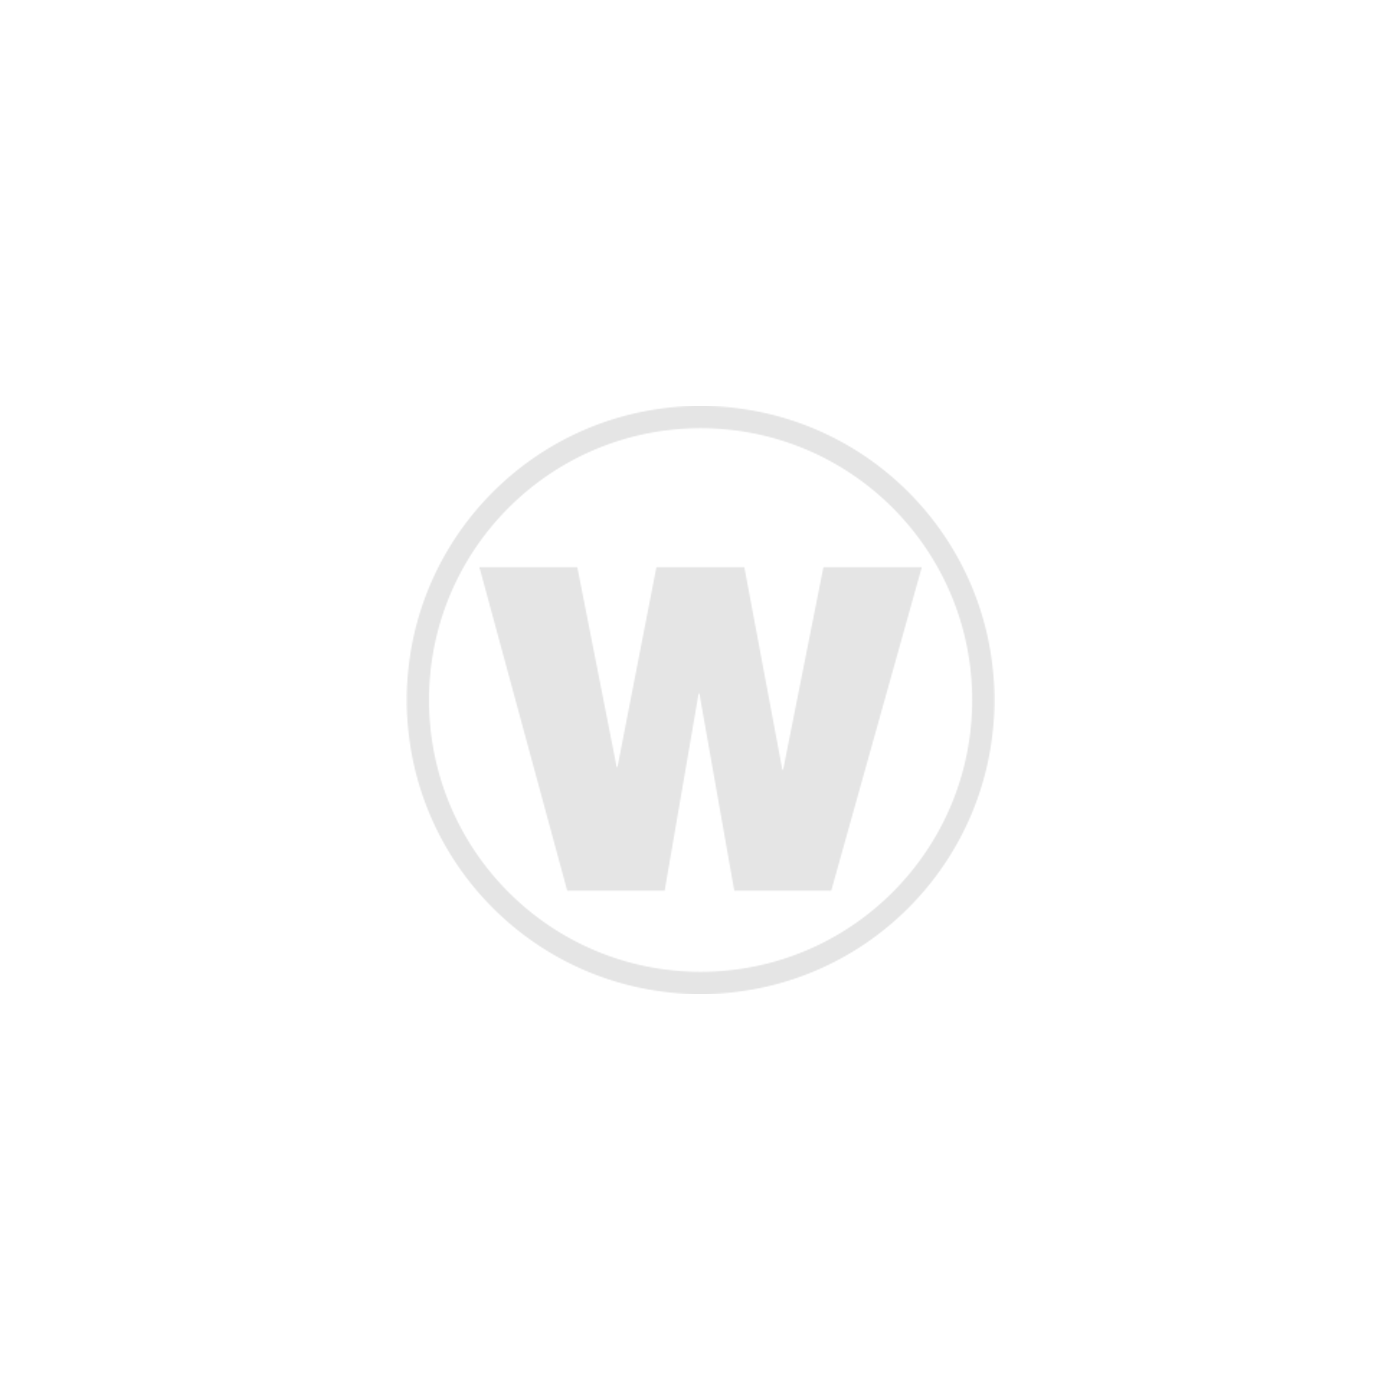 Caol Ila 30 year old 2014 Special Release